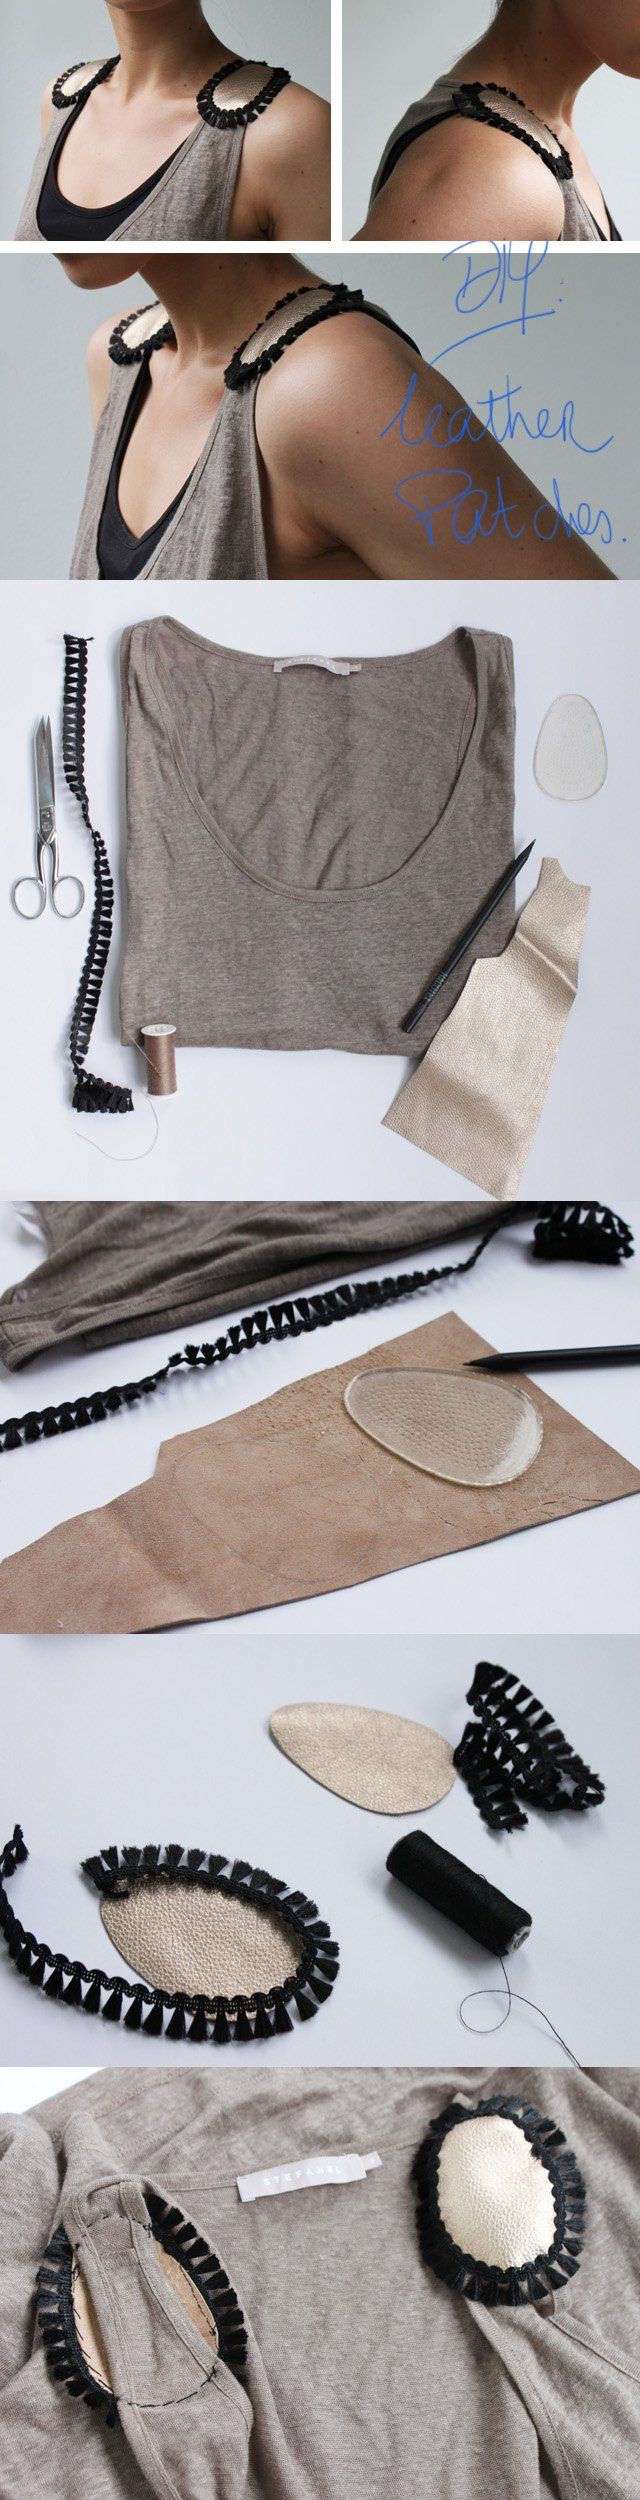 15 DIY Clothing Tutorials - Fashionable DIY Clothes You Should Not Miss - Styles Weekly